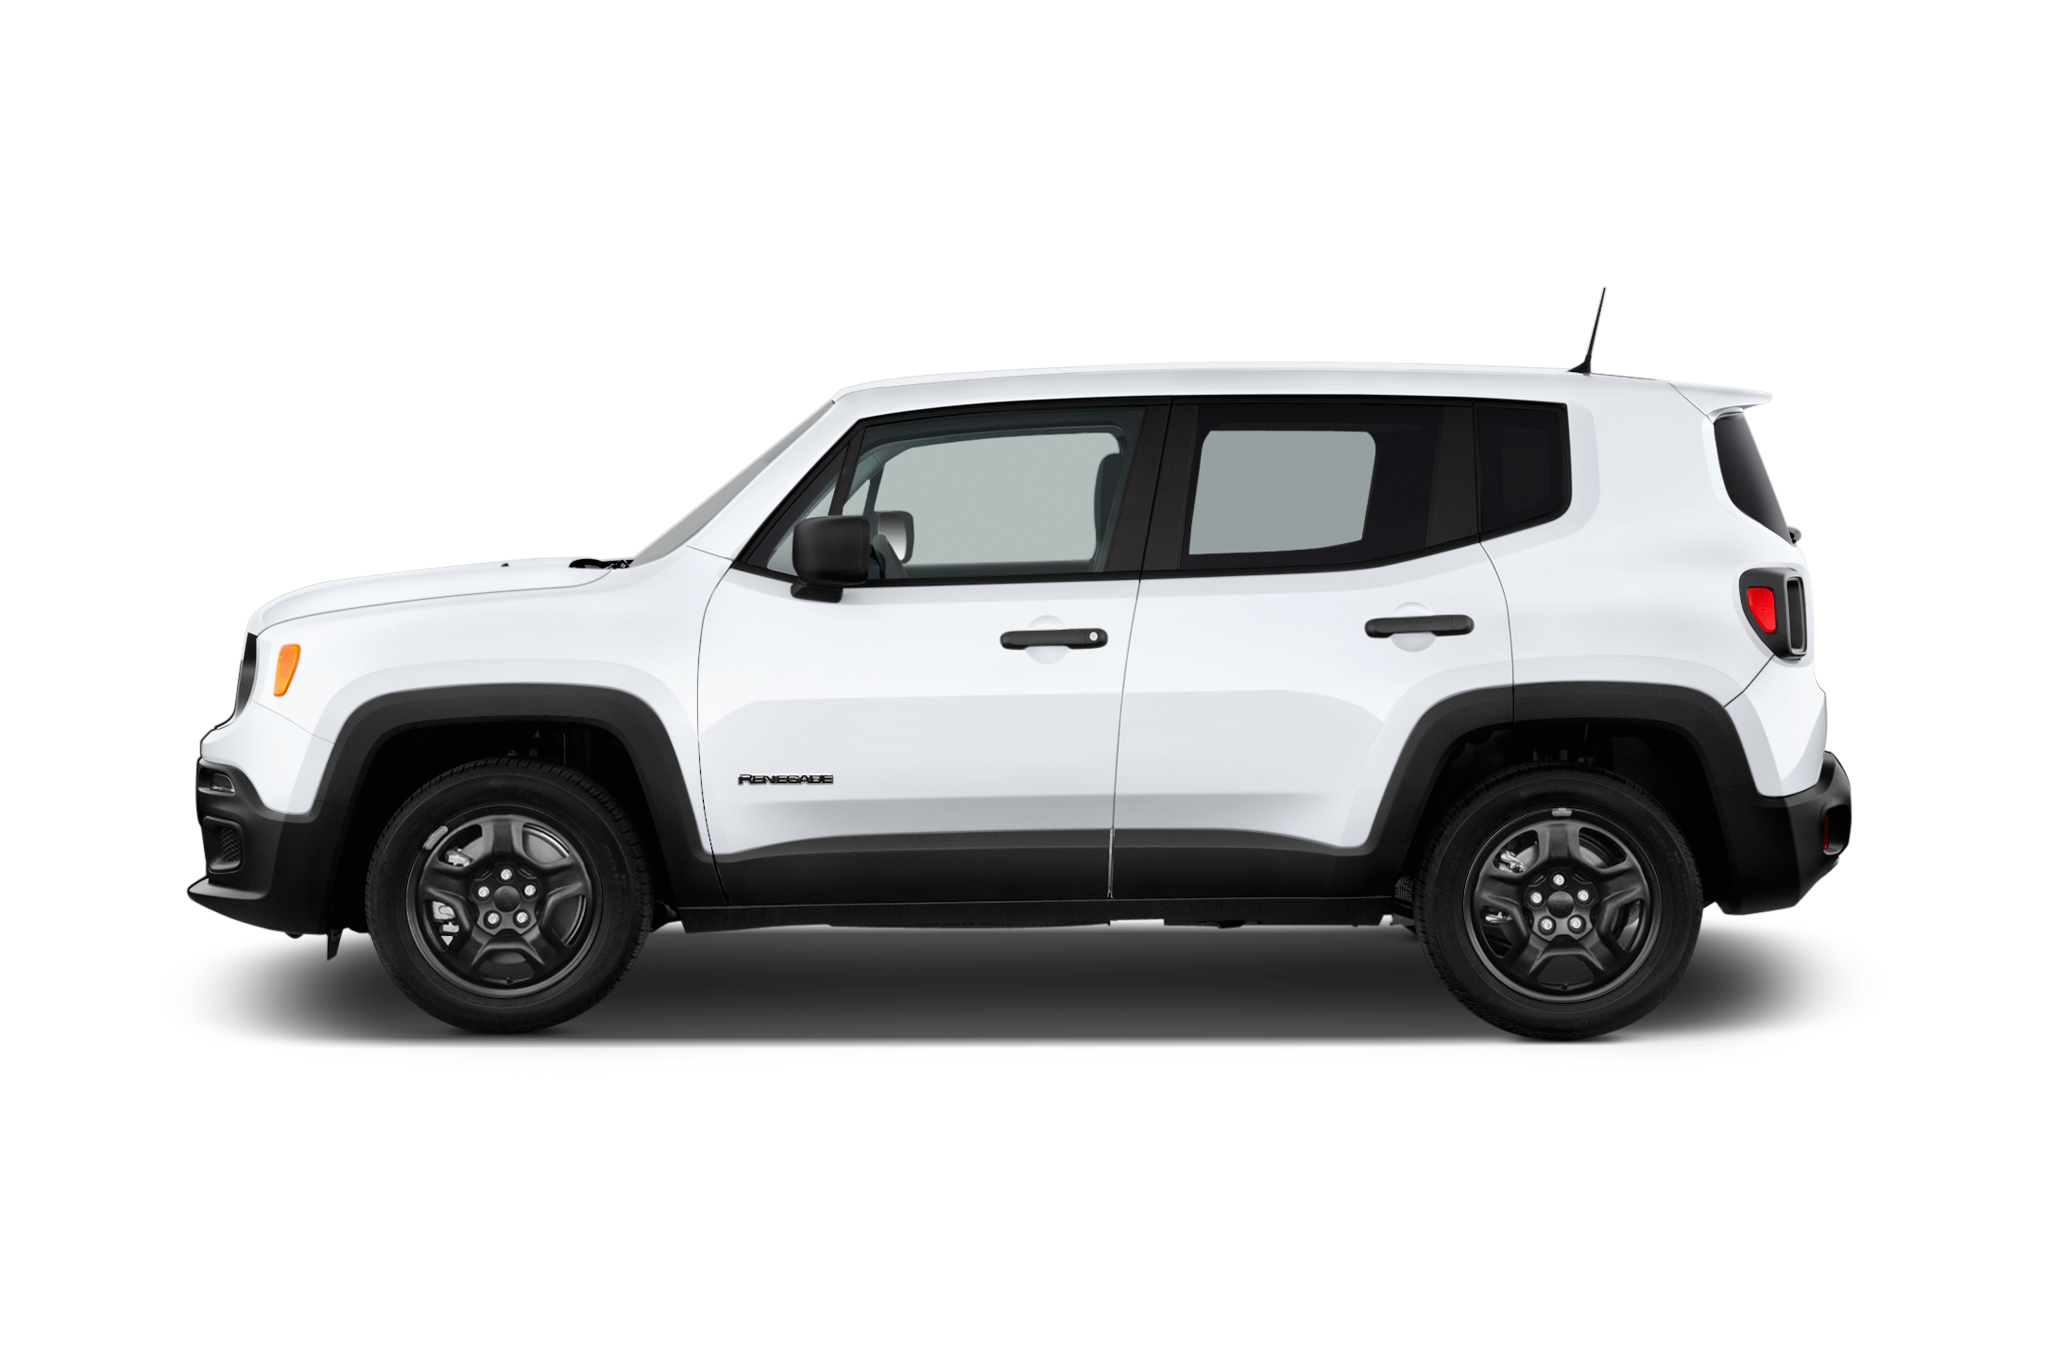 Jeep clipart renegade jeep. New deserthawk to debut